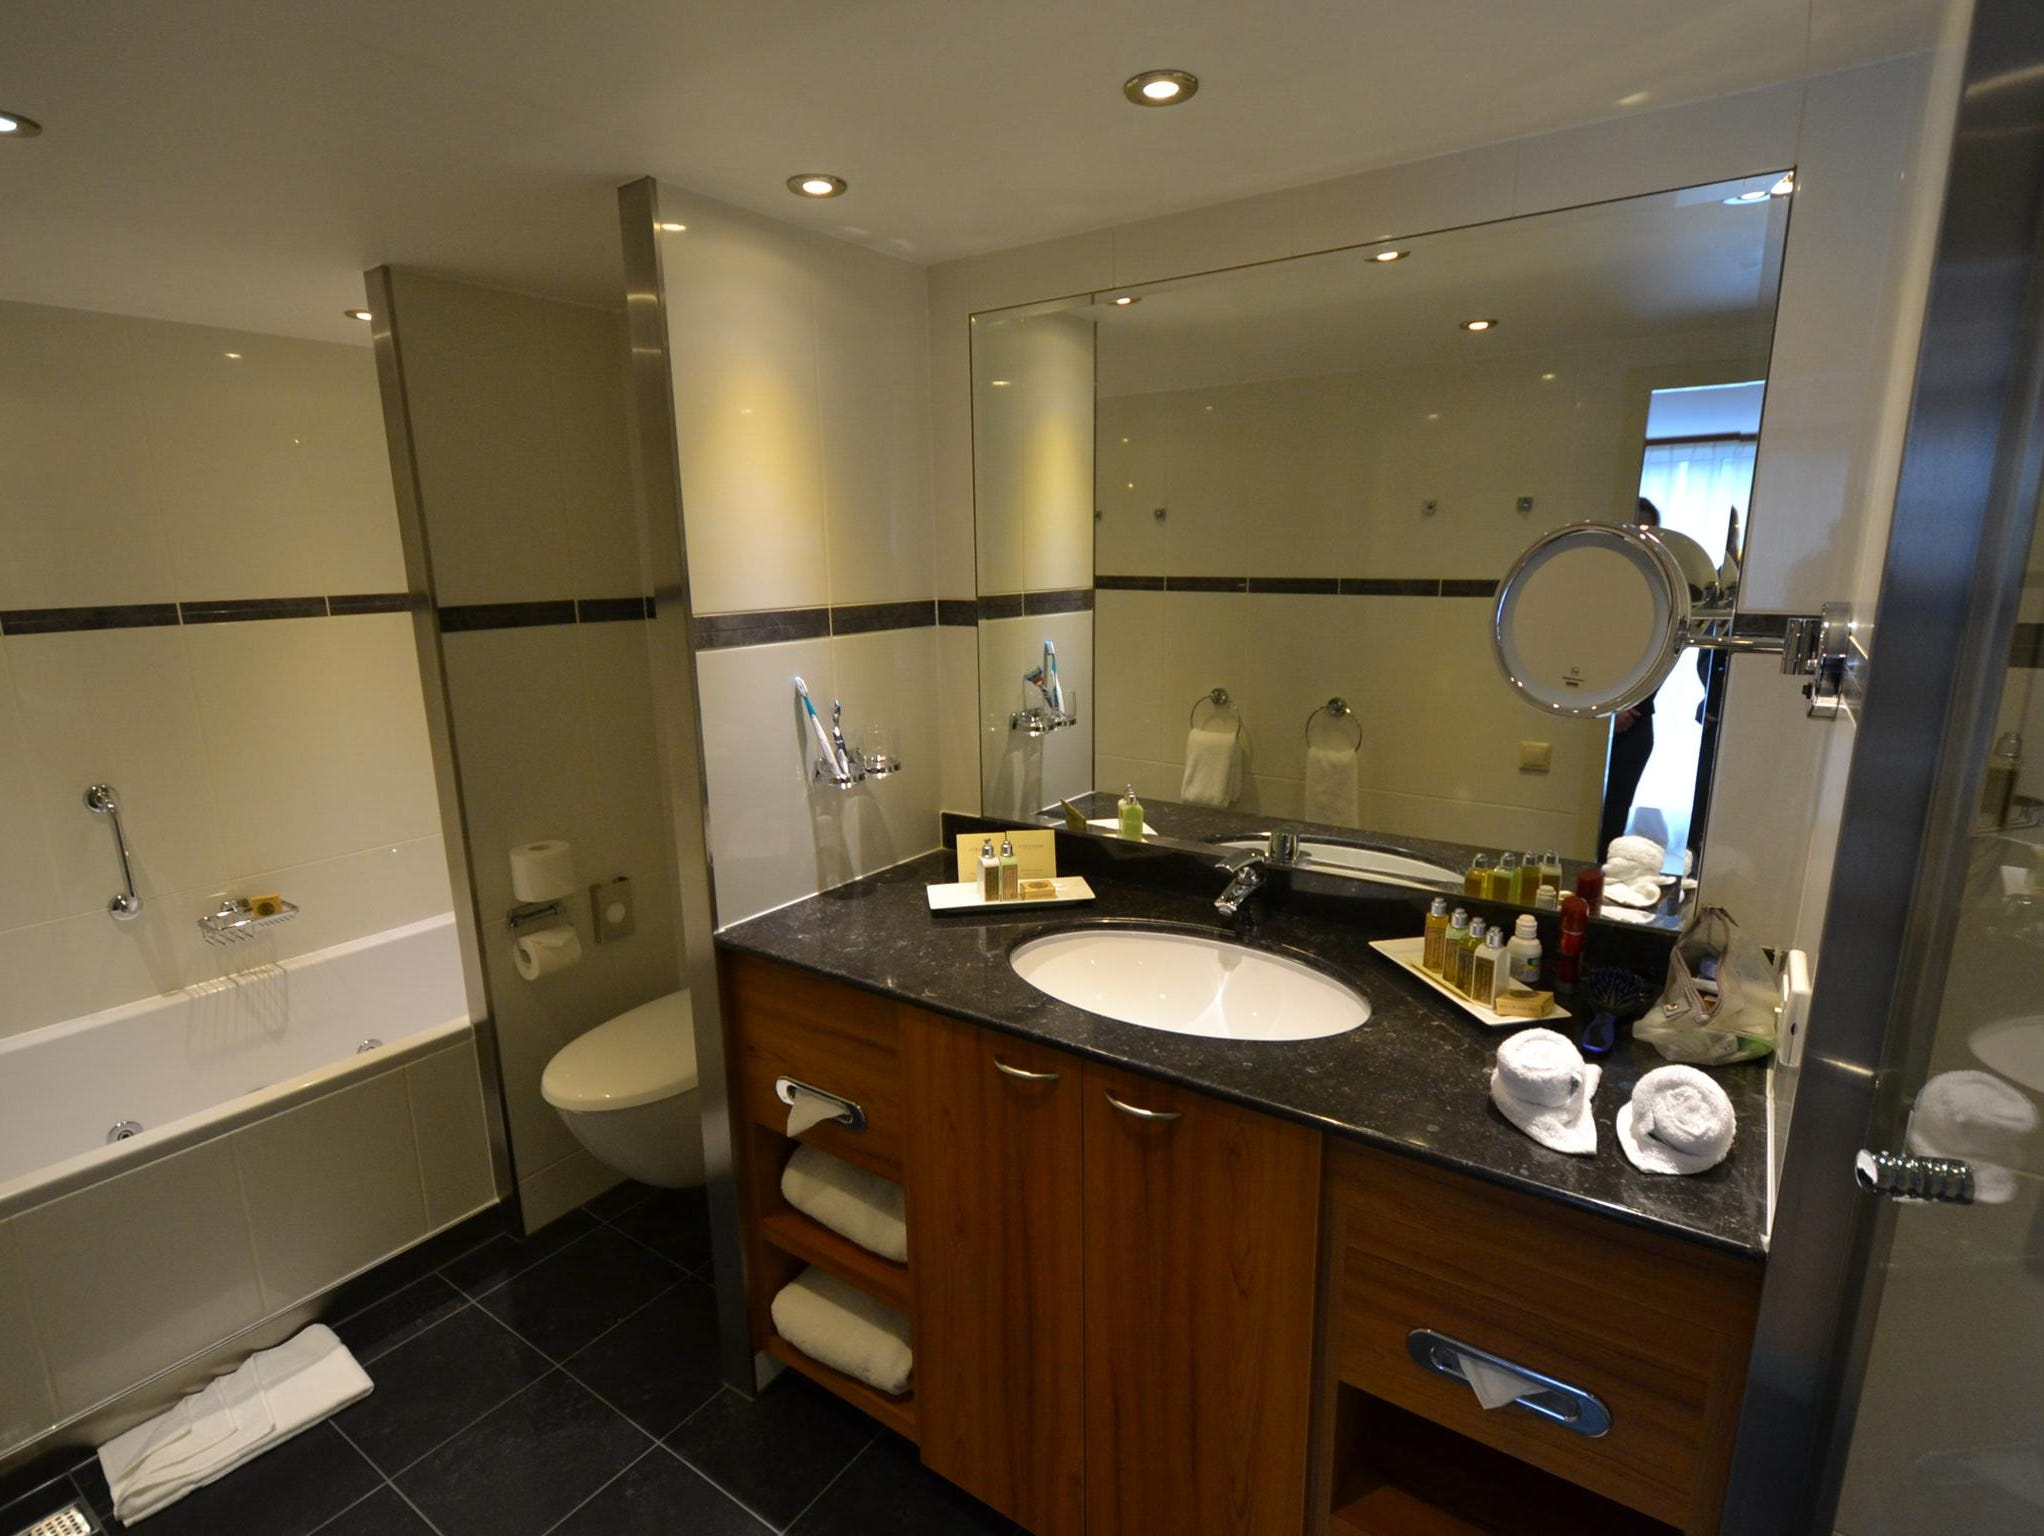 The Owner's Suite's bathroom also is larger than the bathrooms in other cabins.